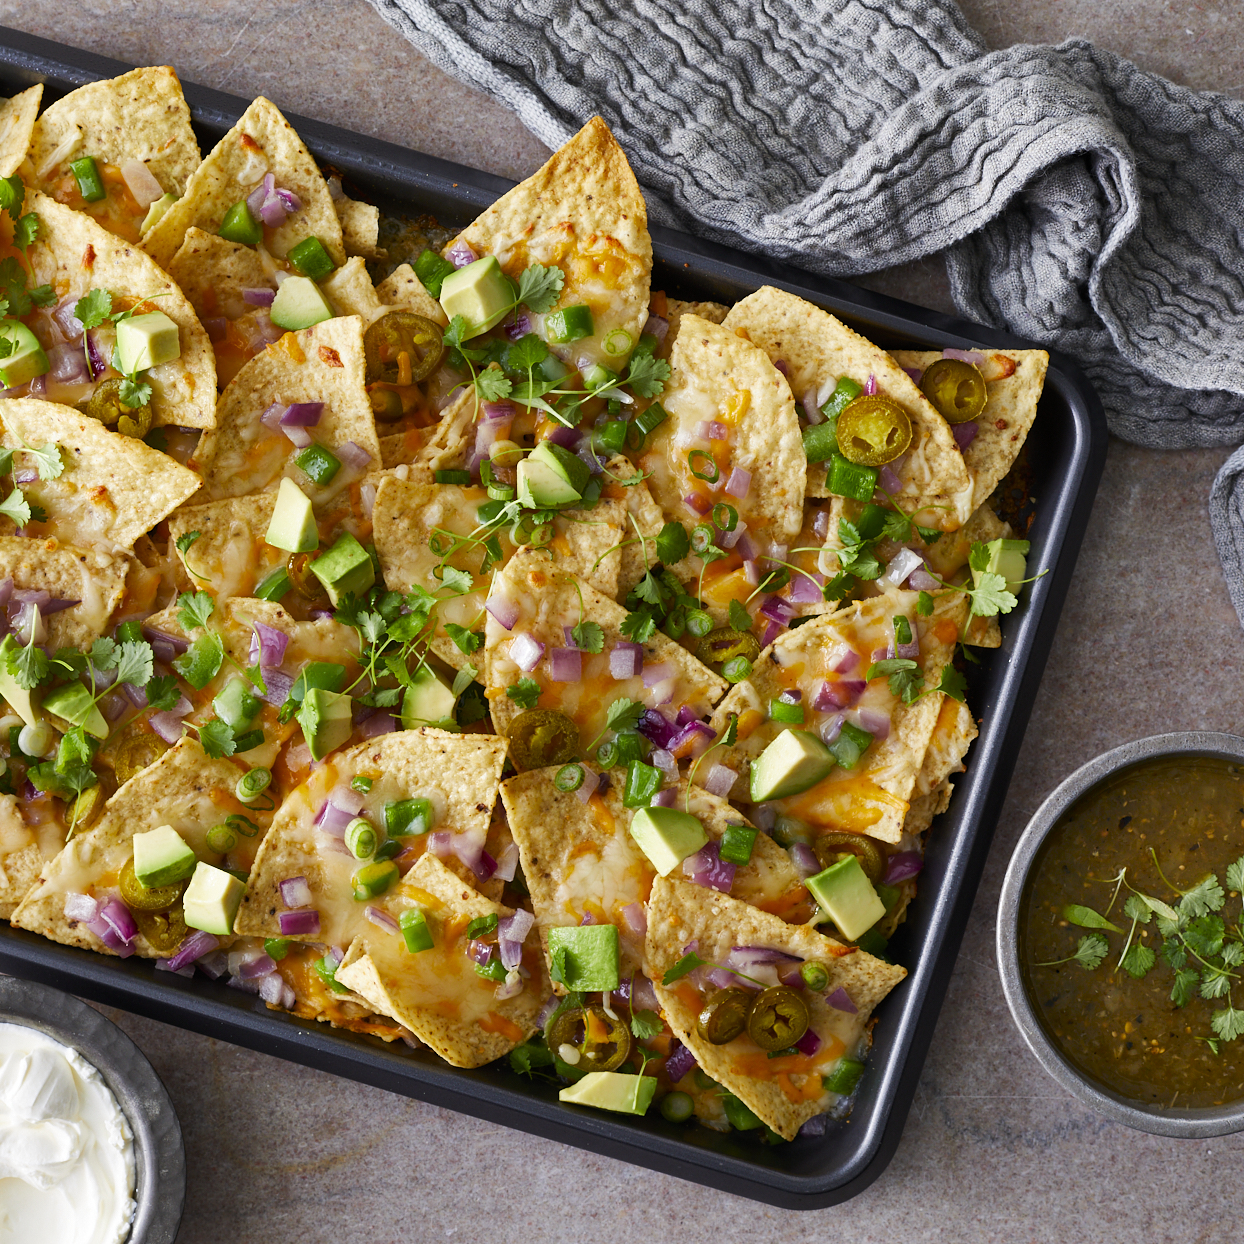 "This quick and easy Super Bowl recipe has been referred to as ""the best nachos people have ever had."" With easy-to-find ingredients, an optional pop of tang and spice from the pickled jalapeños, and the salsa verde and sour cream for serving, we think it's earned its title!"